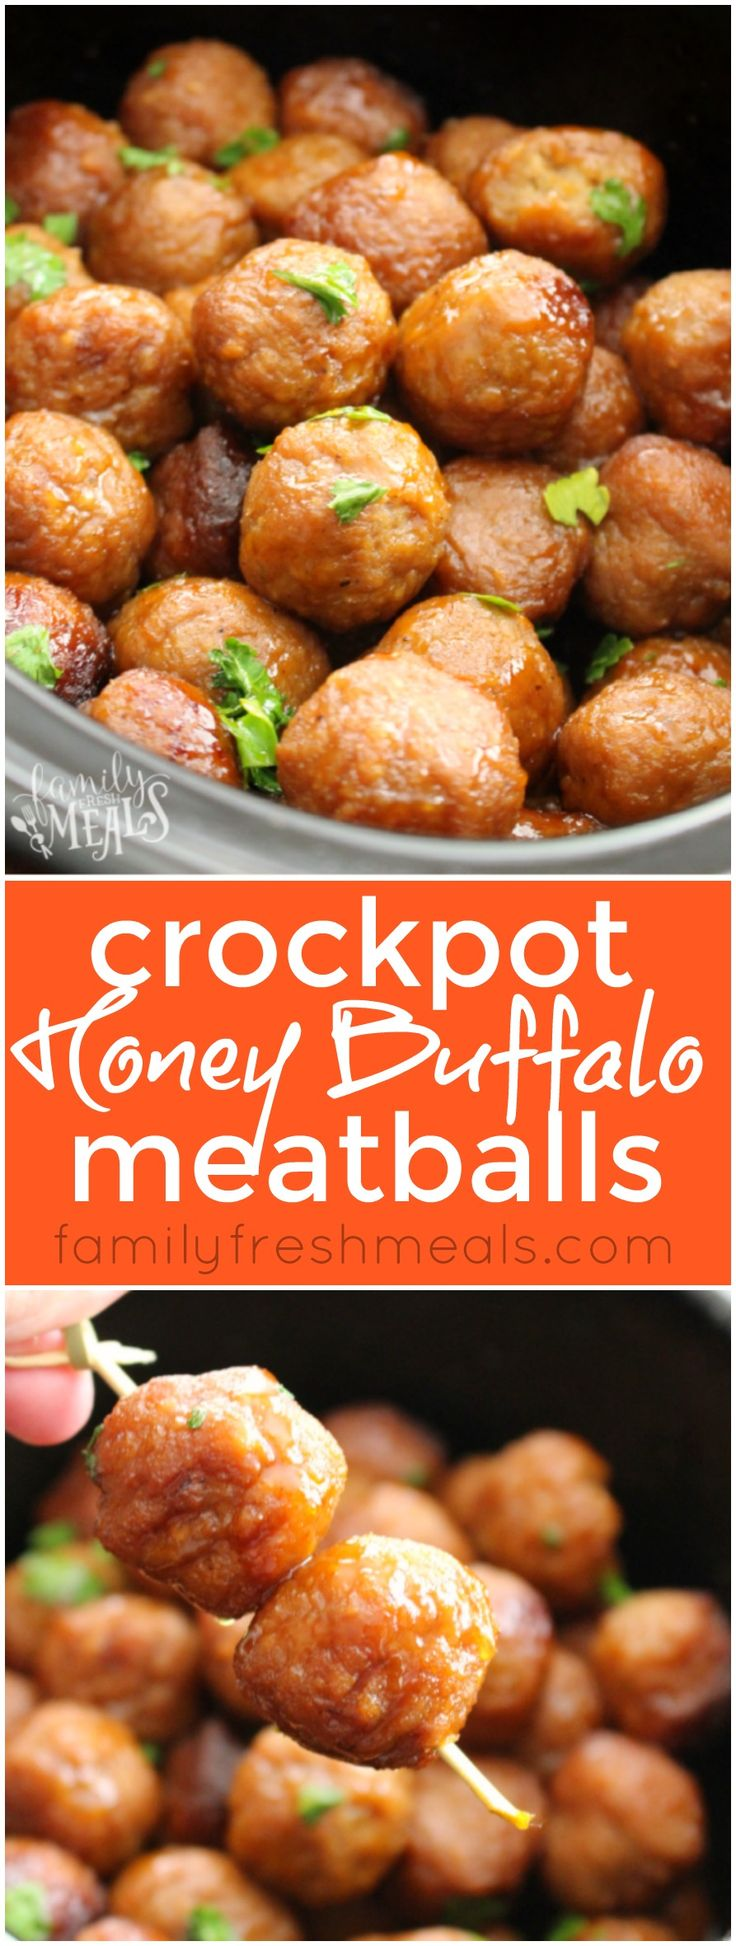 Honey Buffalo Crockpot Meatballs -Love this appetizer recipe- FamilyFreshMeals.com - Love this appetizers